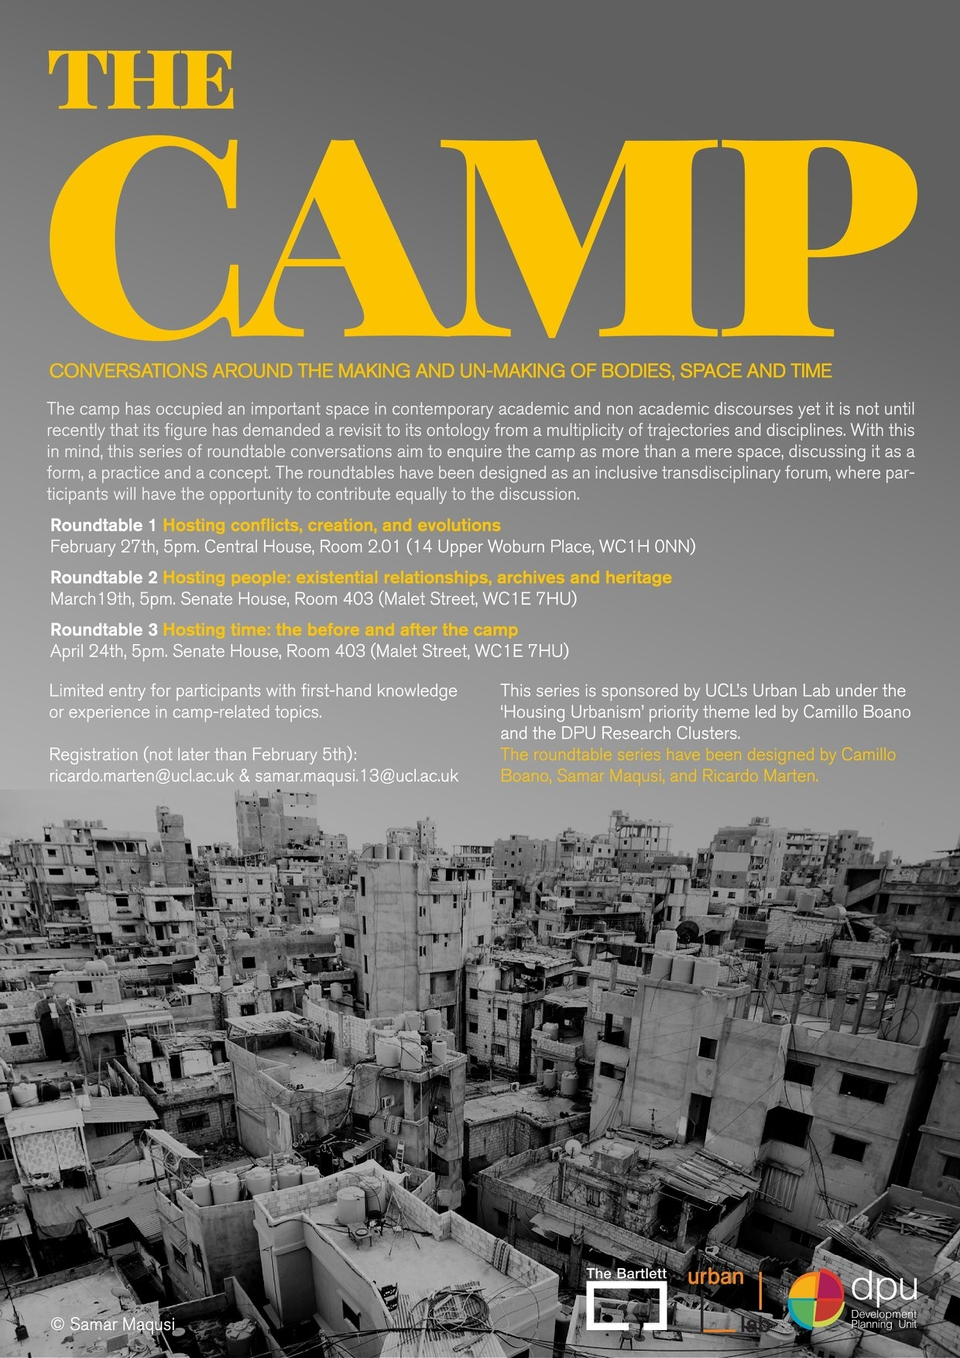 THE CAMP: Conversations around the making and un-making of bodies, space and time